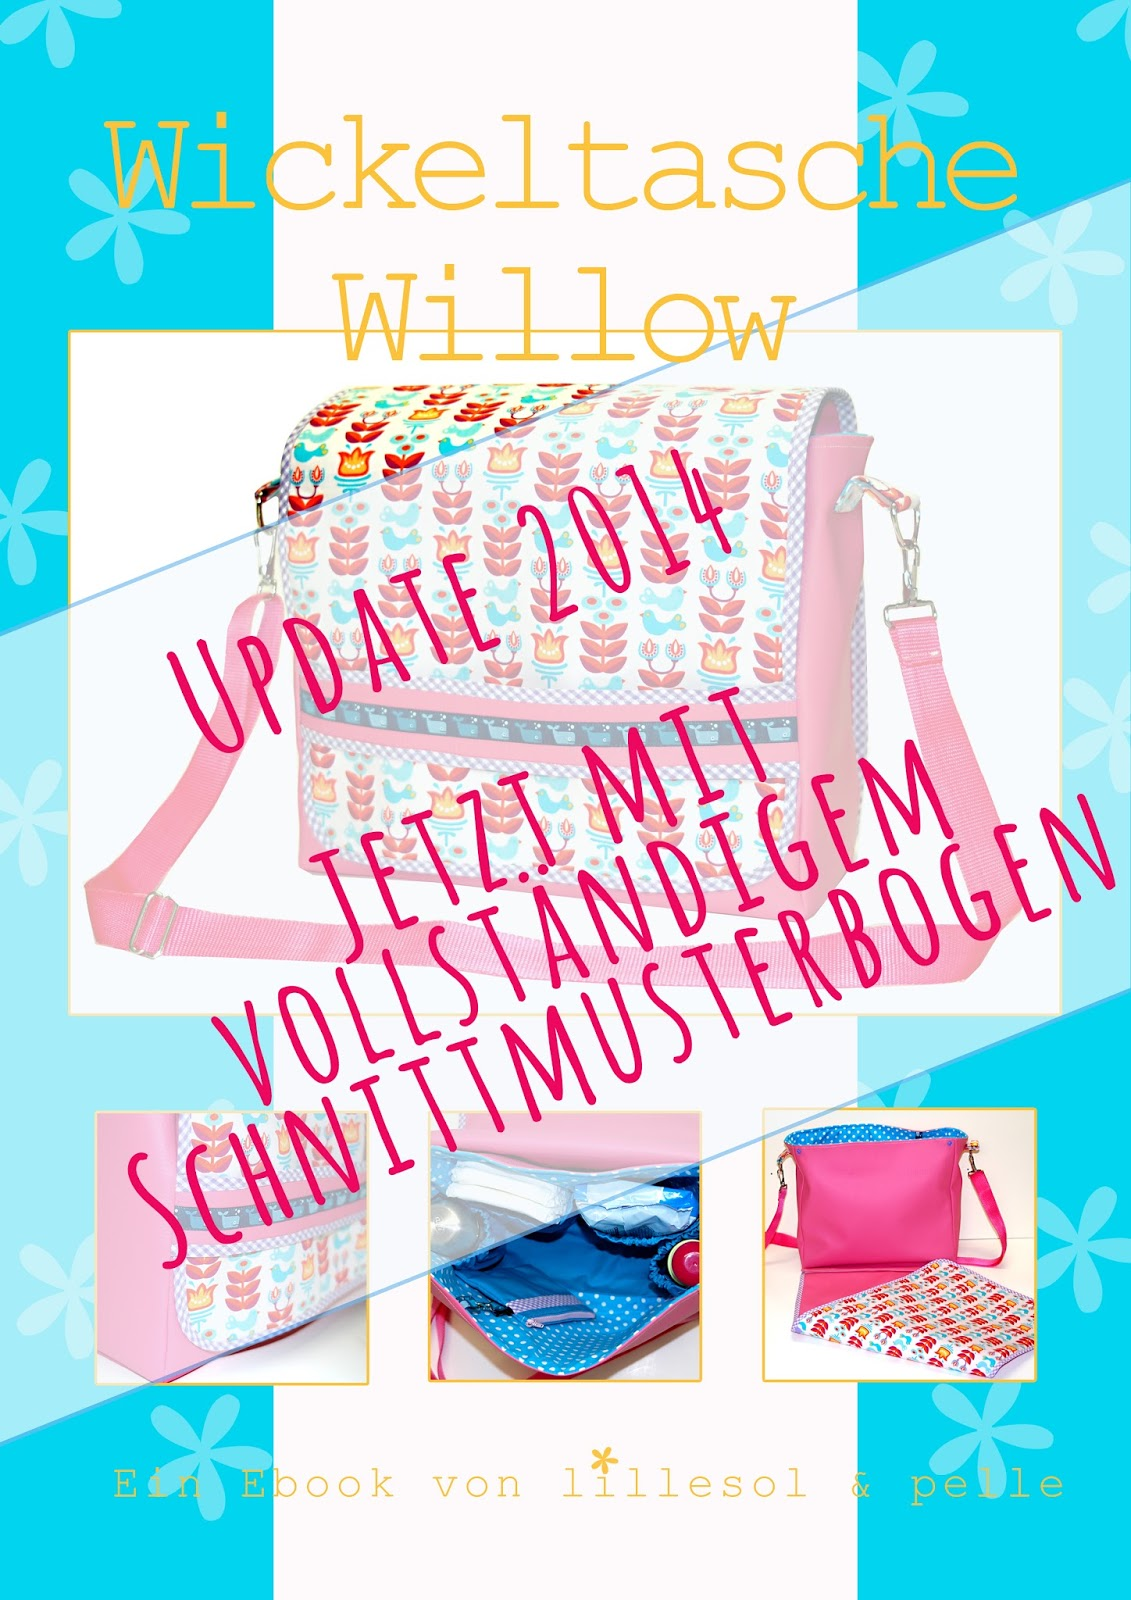 Titelbild-Ebook-willow-schnittbogen-Kopie